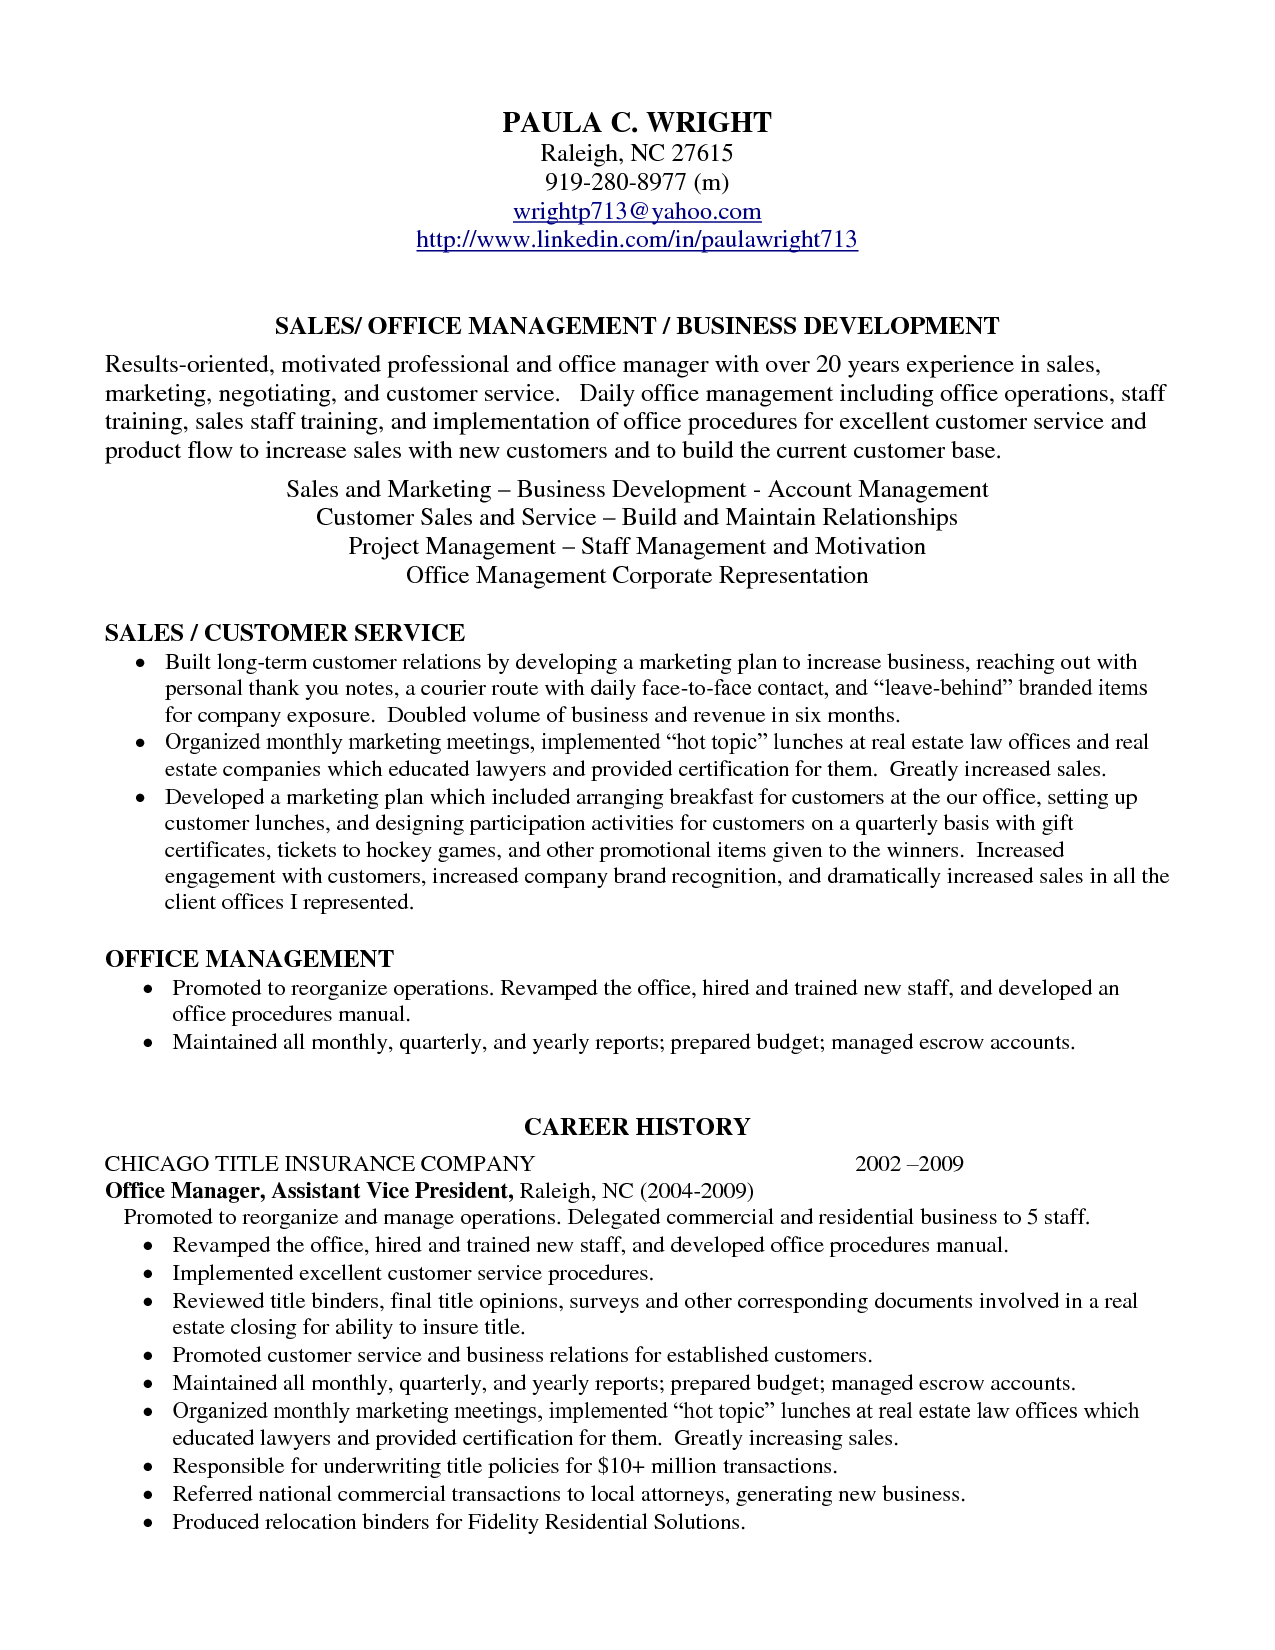 Business Resume Templates Professional Profile Resume Examplesresume Professional Profile